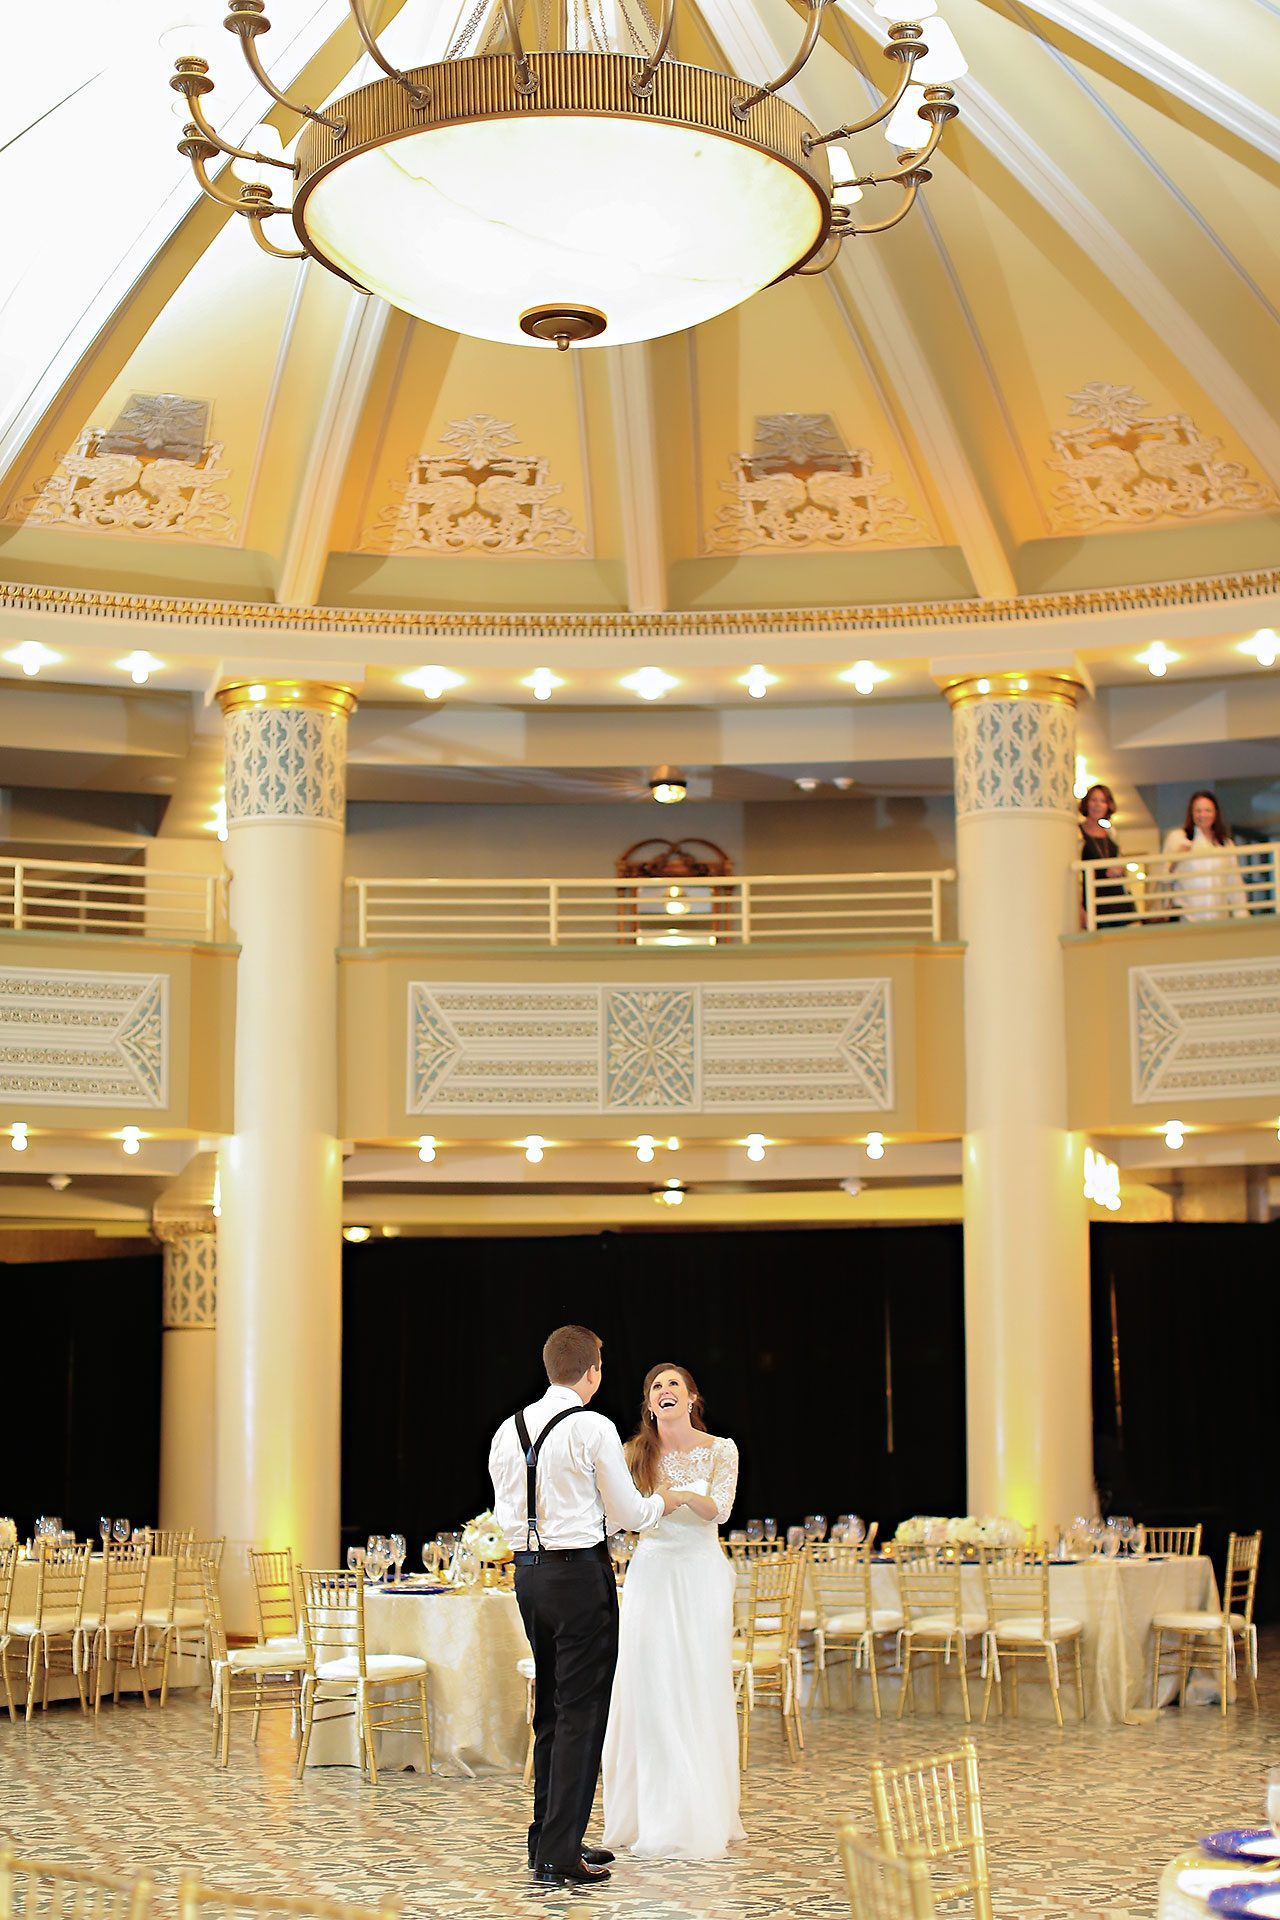 Chelsea Jeff West Baden Wedding 301